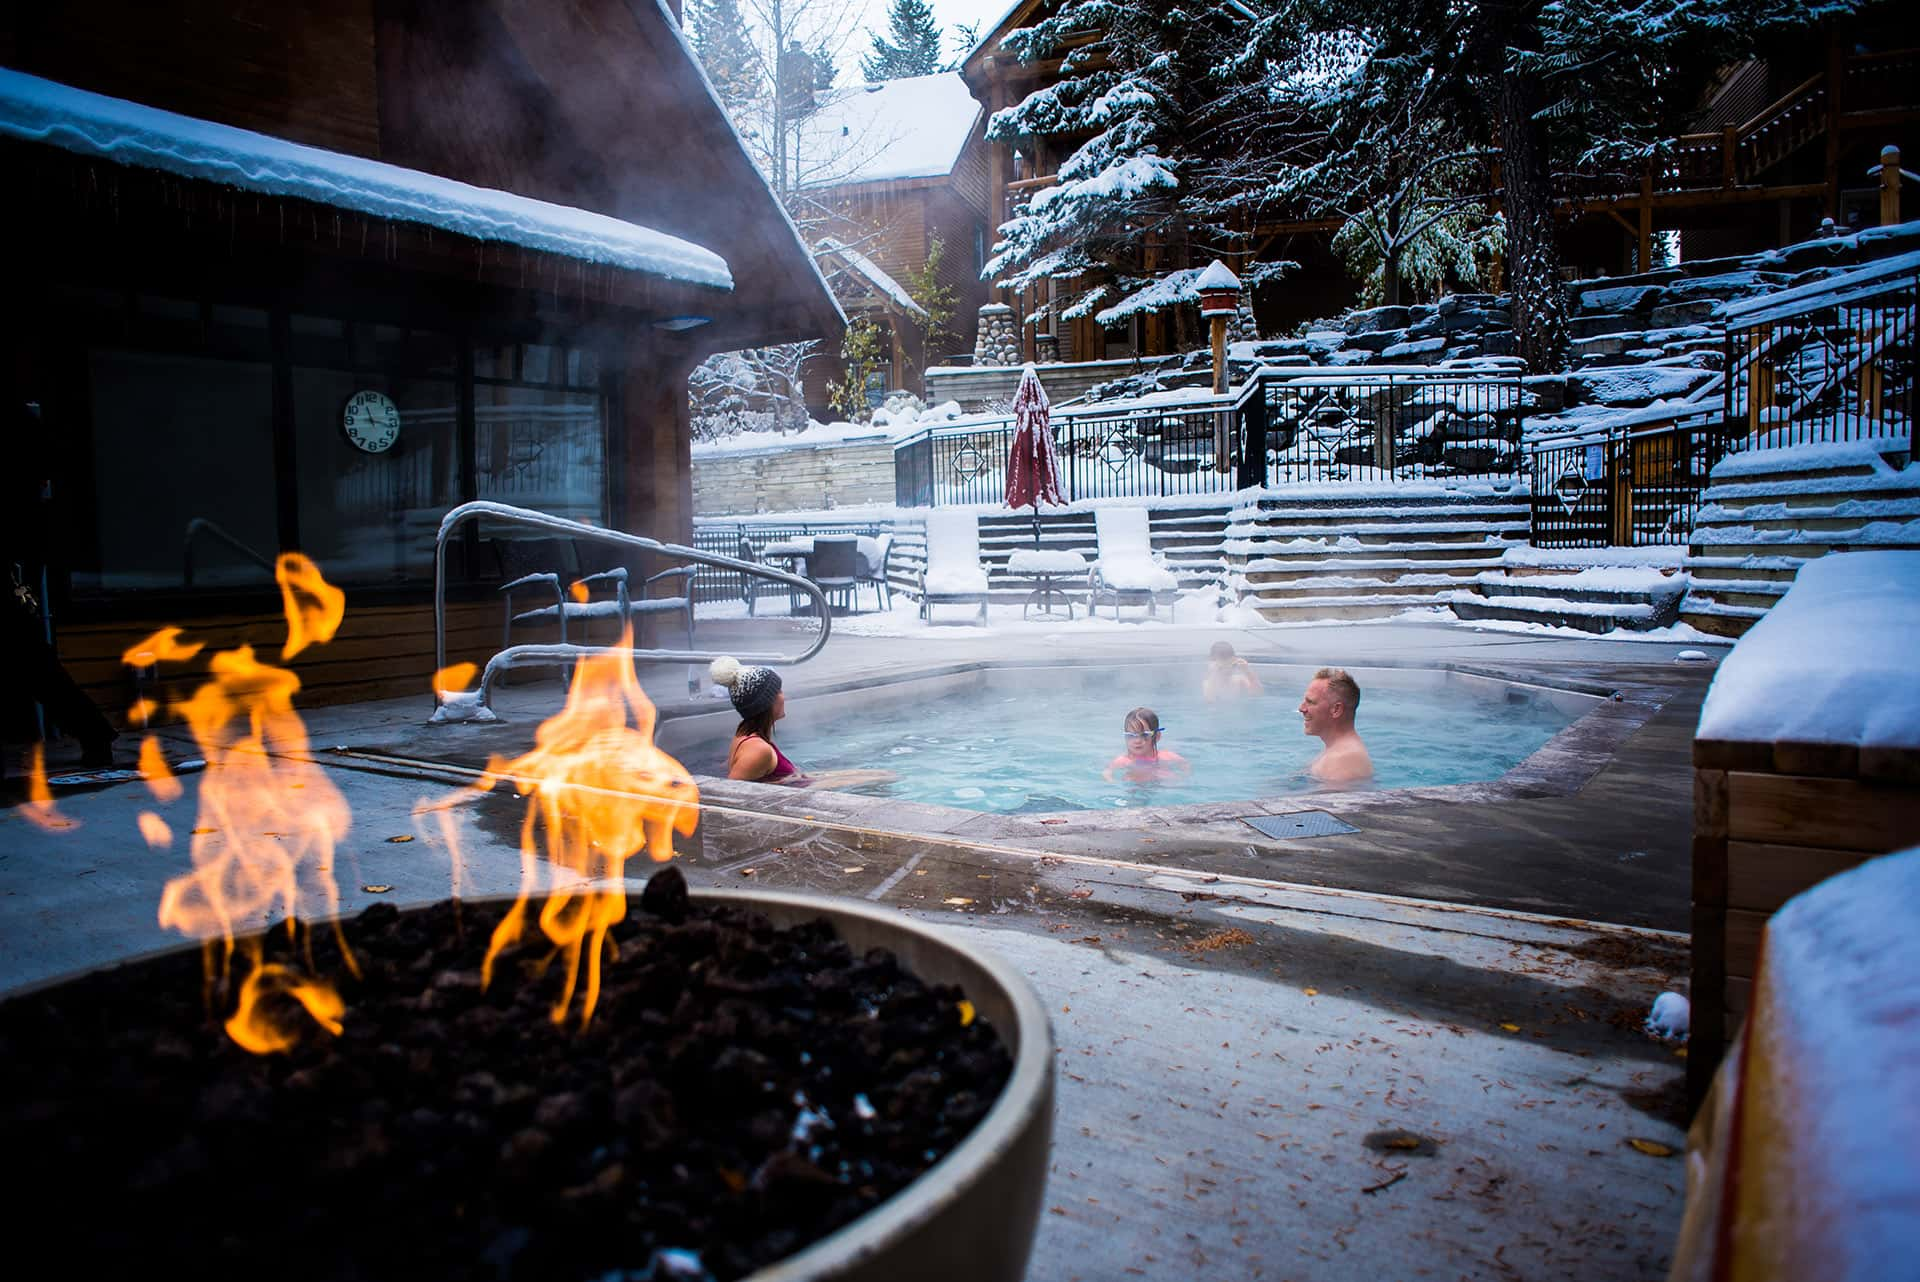 Family Enjoys Hot Tub at Buffalo Mountain Lodge in Banff National Park